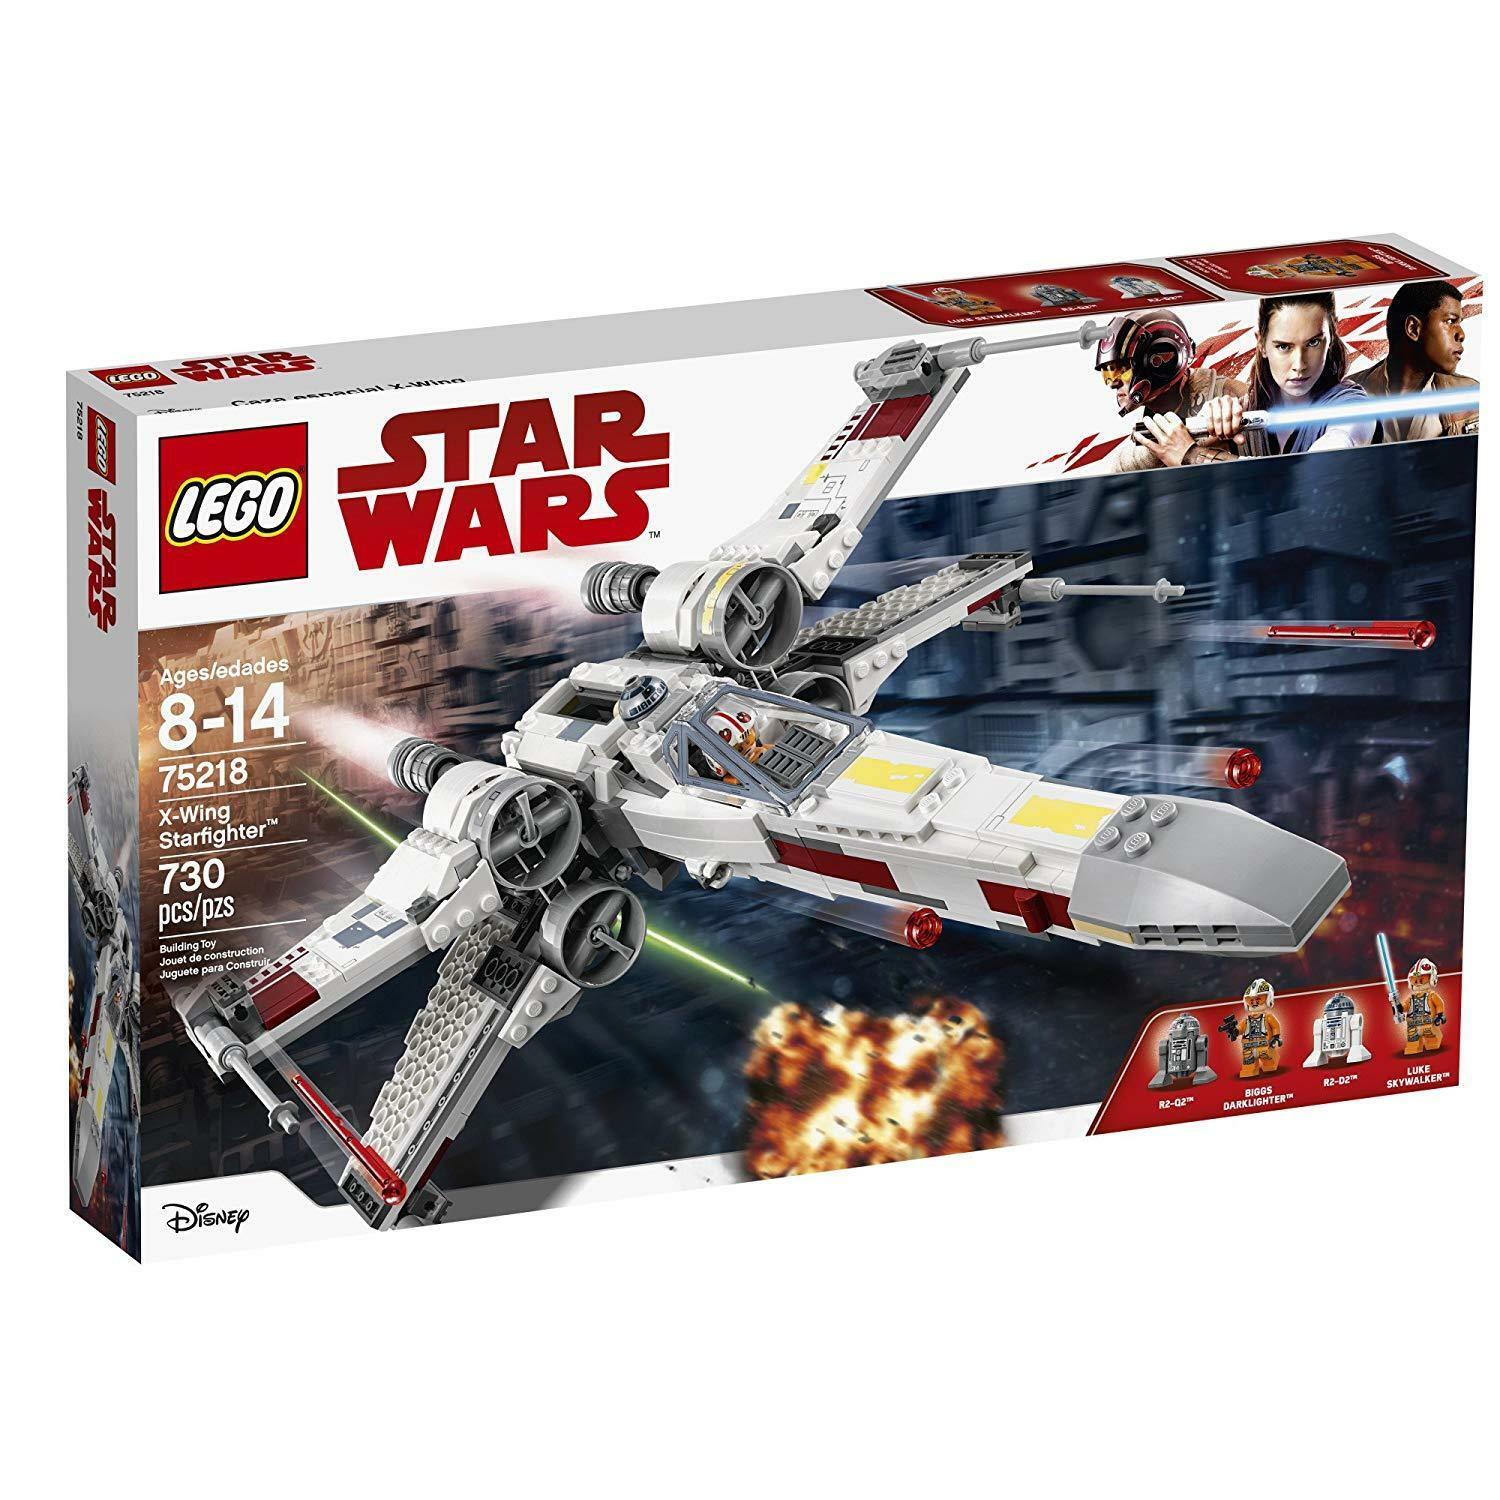 LEGO LEGO LEGO STAR WARS X-Wing Starfighter Building Kit 75218 aca4d7